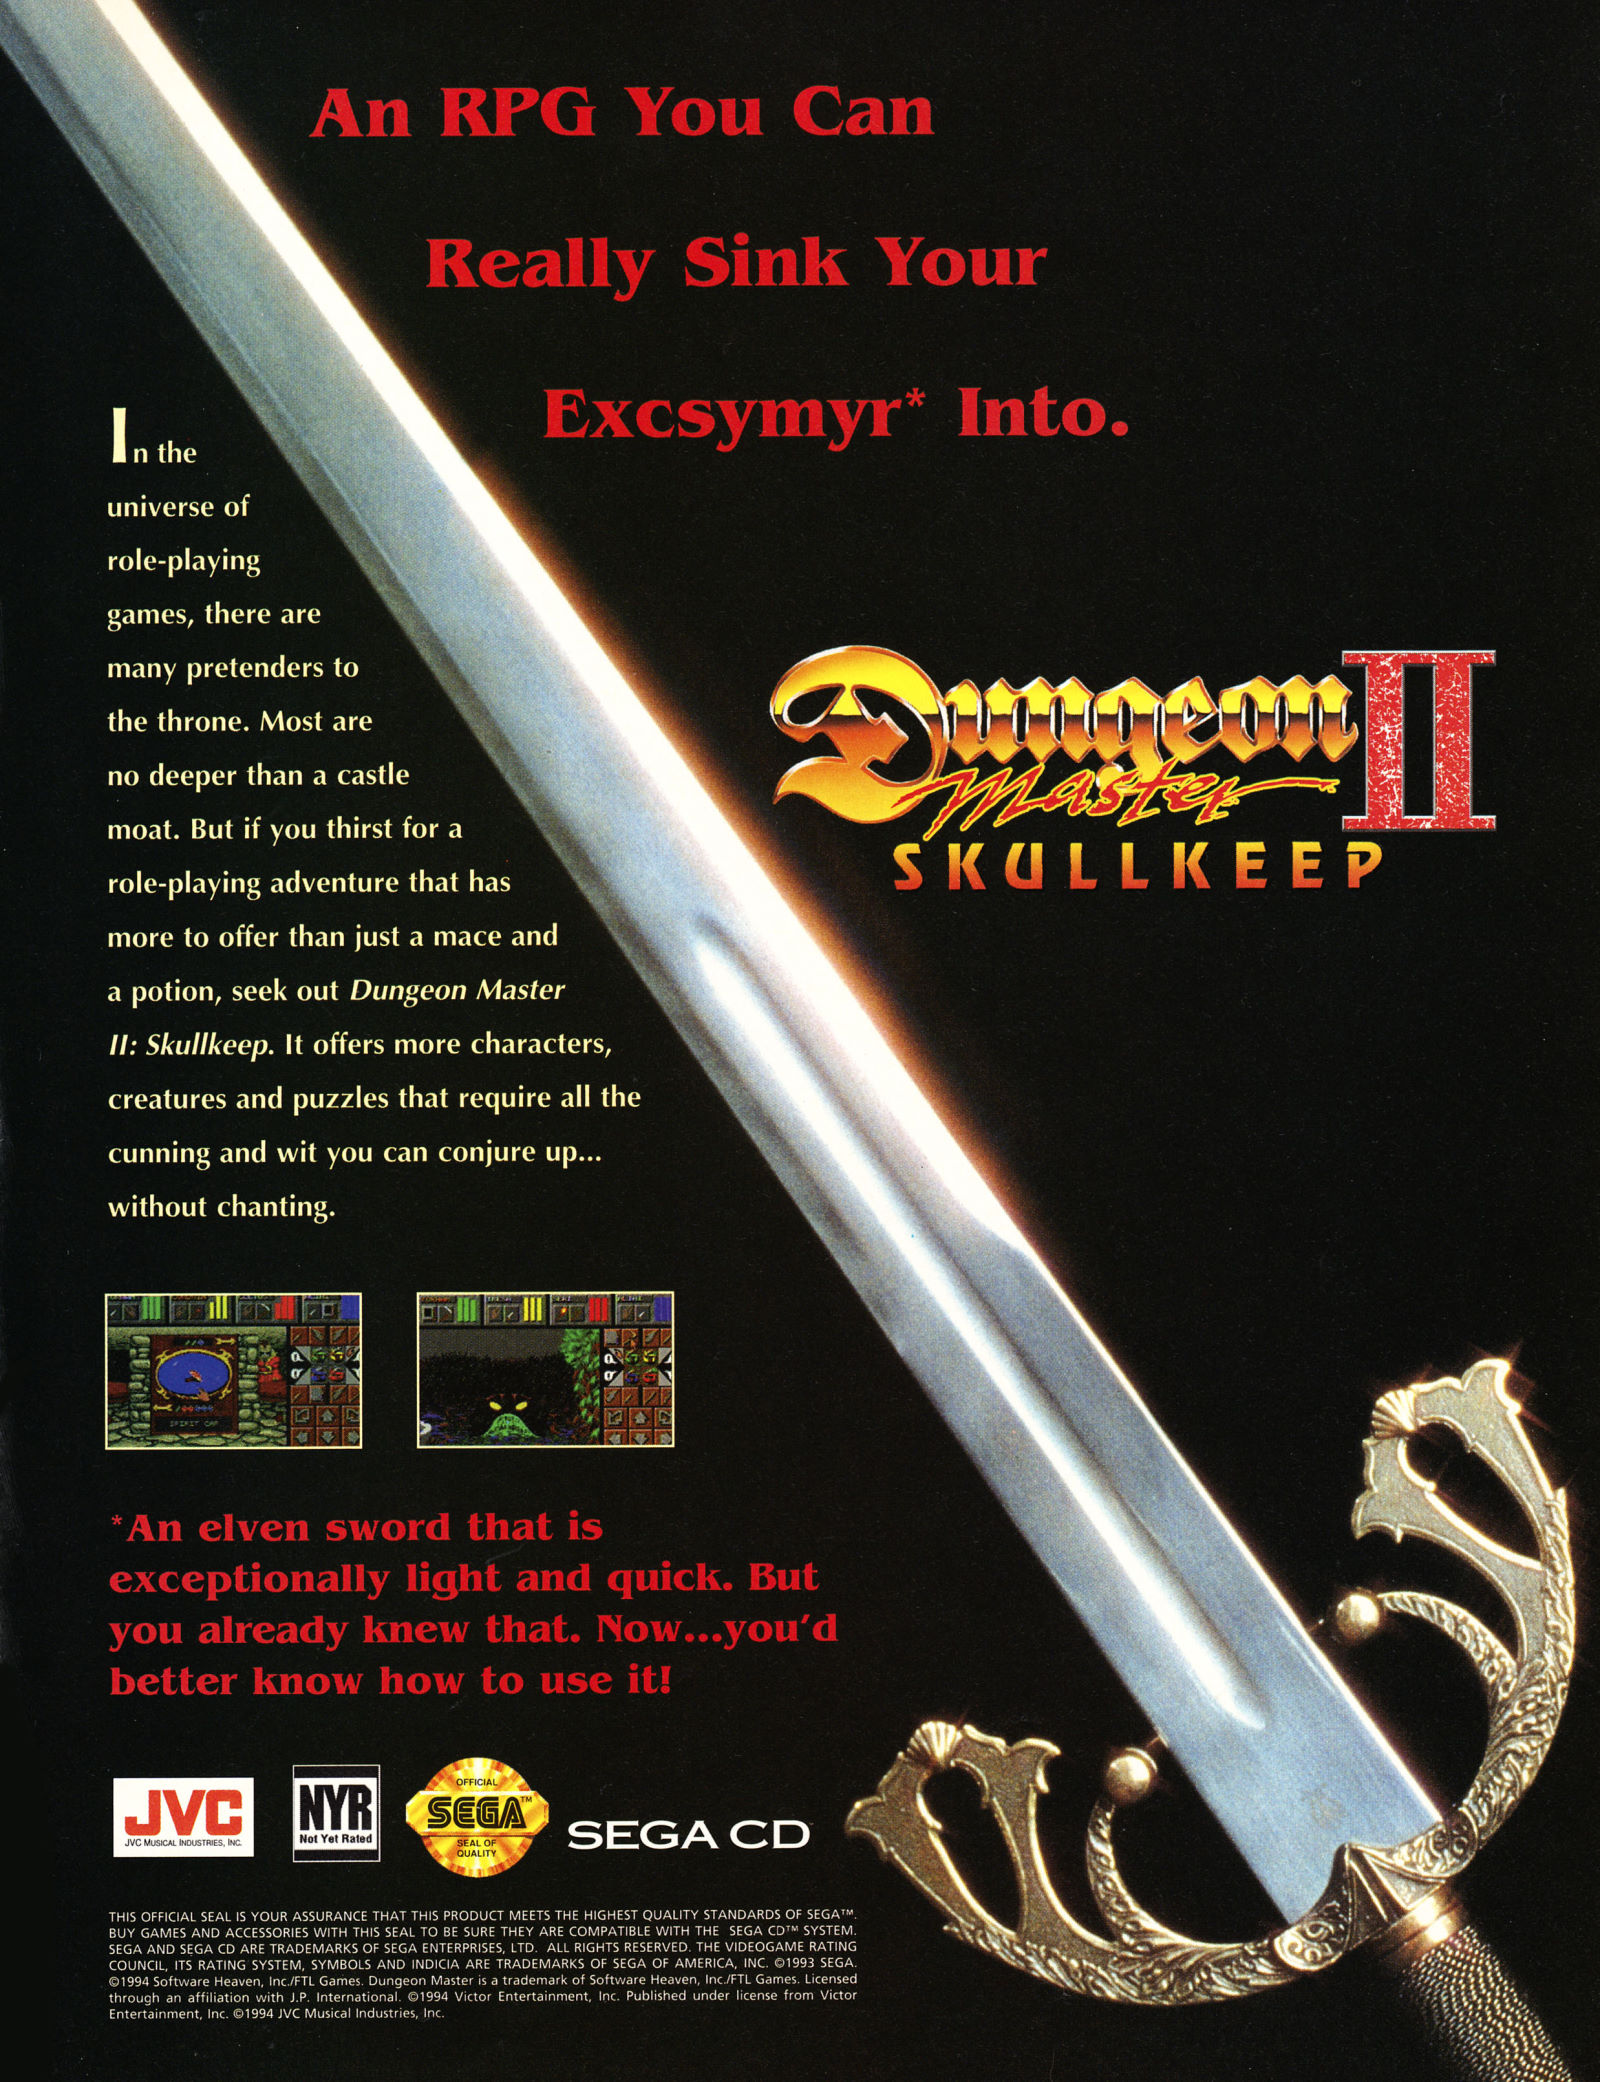 Dungeon Master II for Sega CD Advertisement published in American magazine 'Electronic Games', Vol 2 No 11 August 1994, Page 81